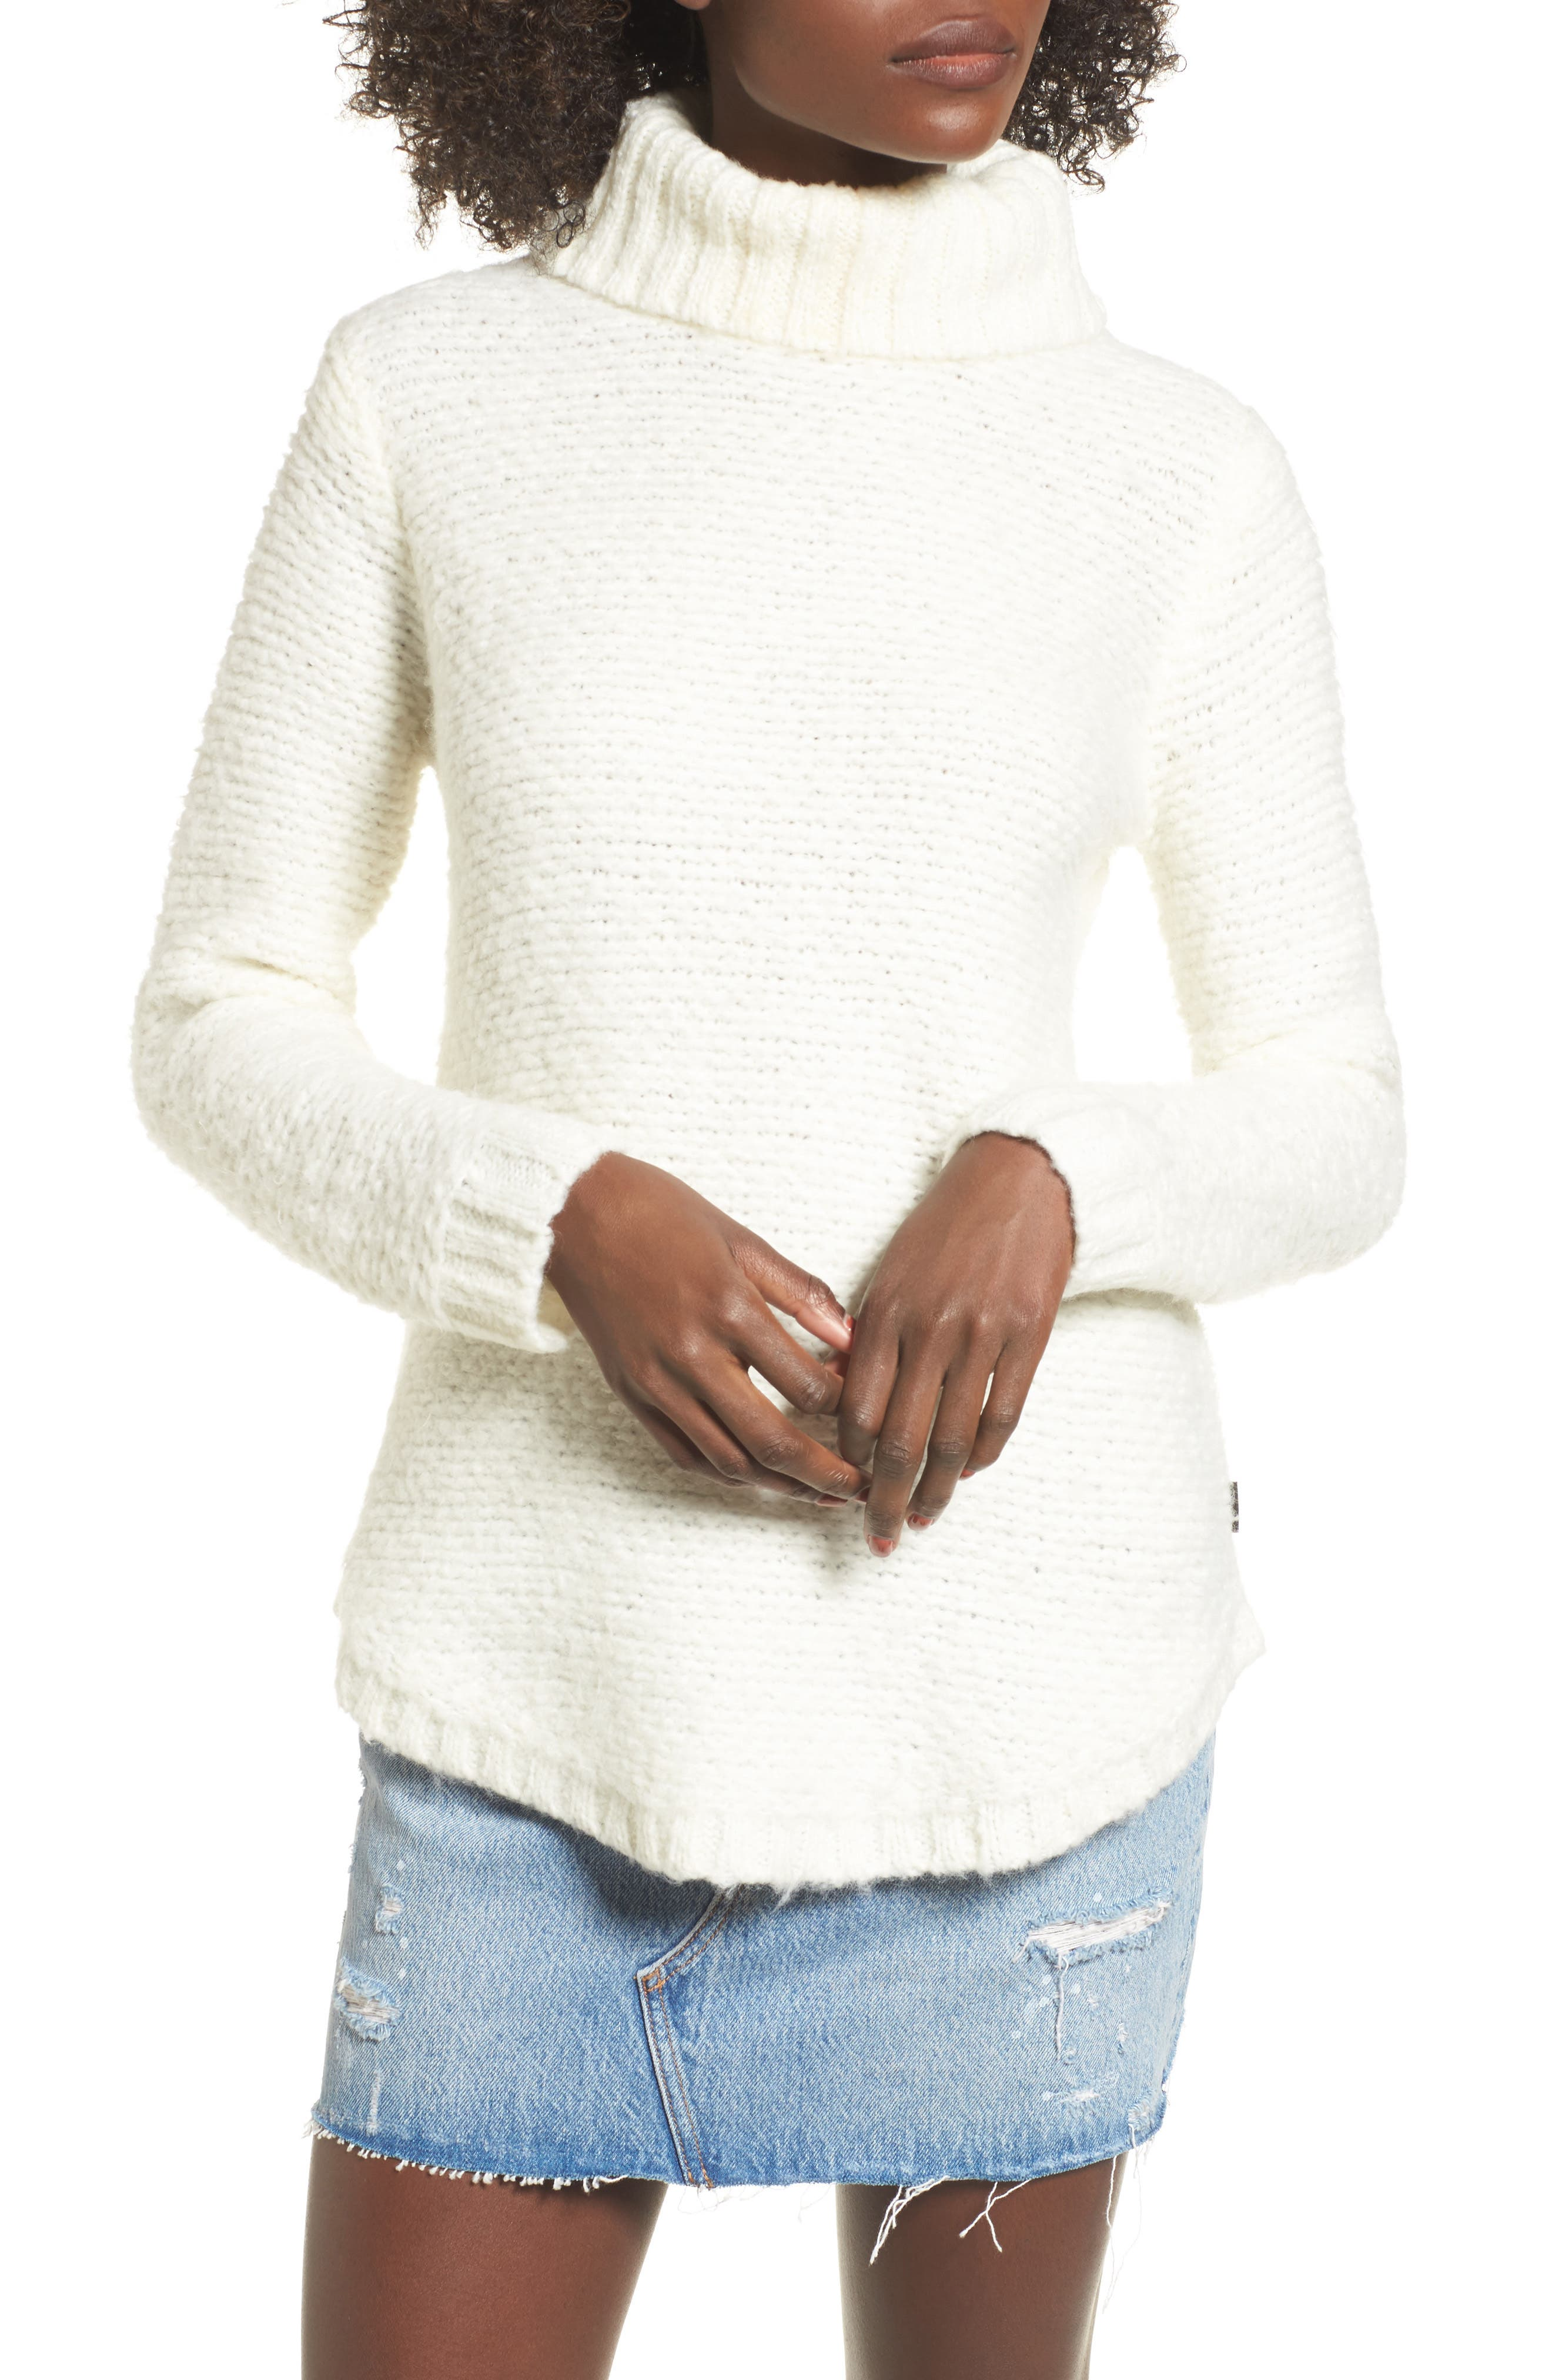 Kinks Turtleneck Sweater,                         Main,                         color, Vintage White